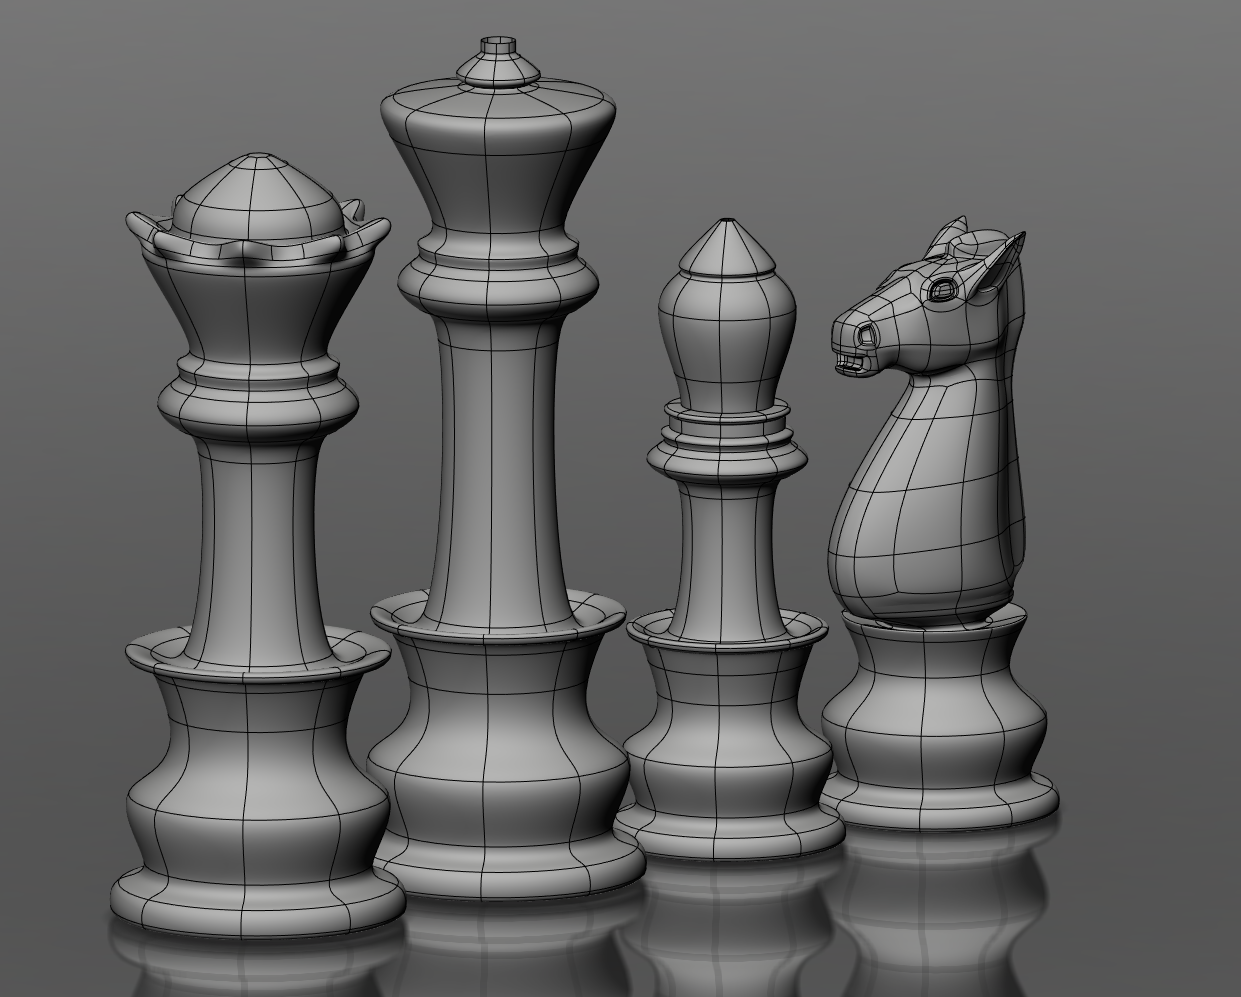 Chess Pieces Chess Pieces Chess Alice In Wonderland